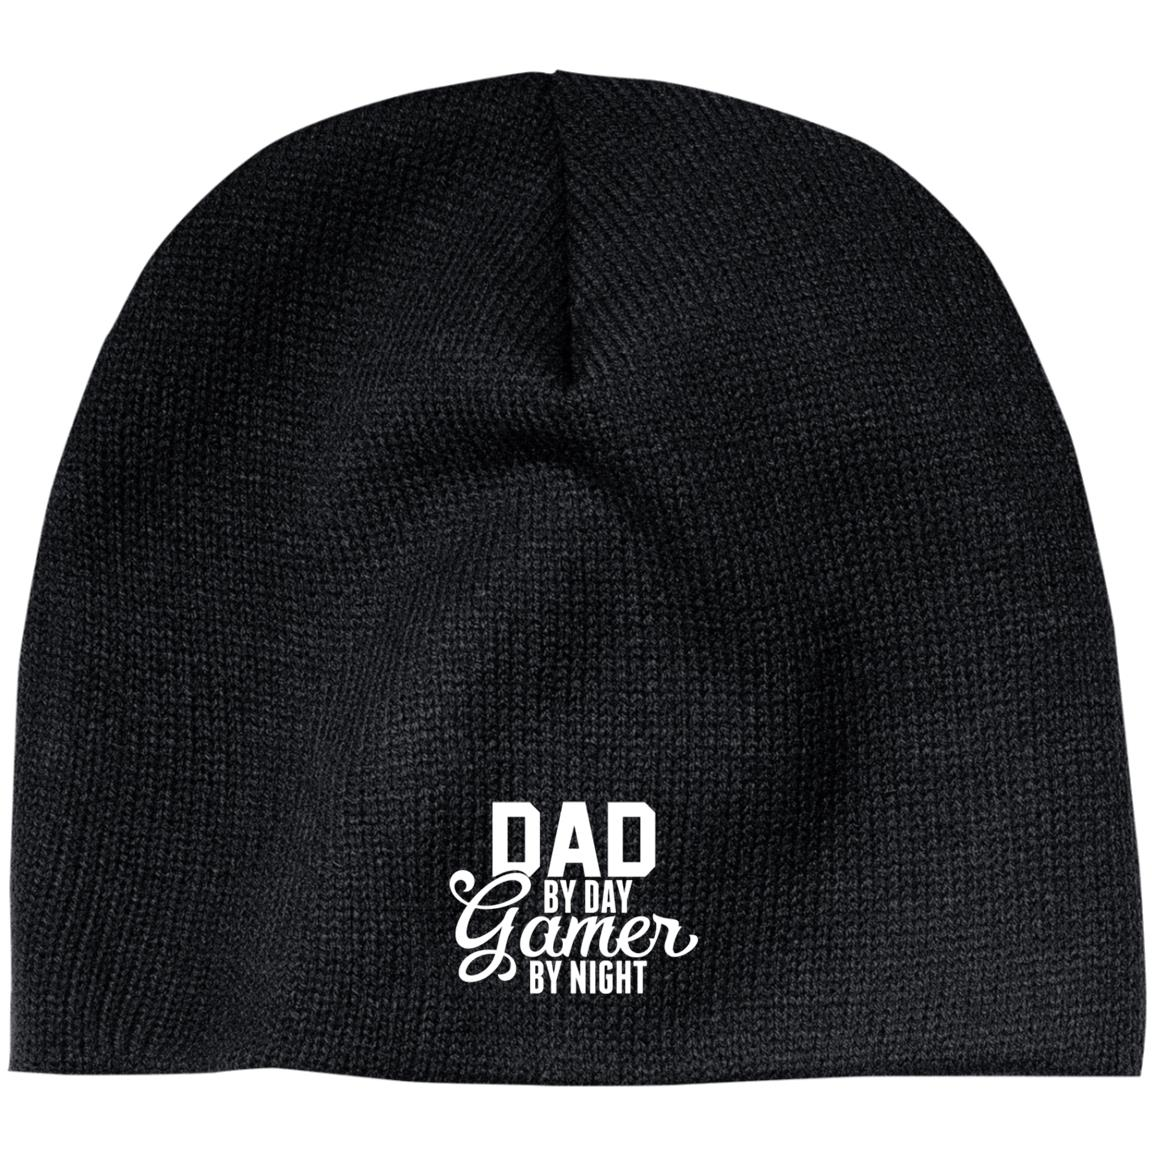 Dad By Day Gamer By Night Beanie